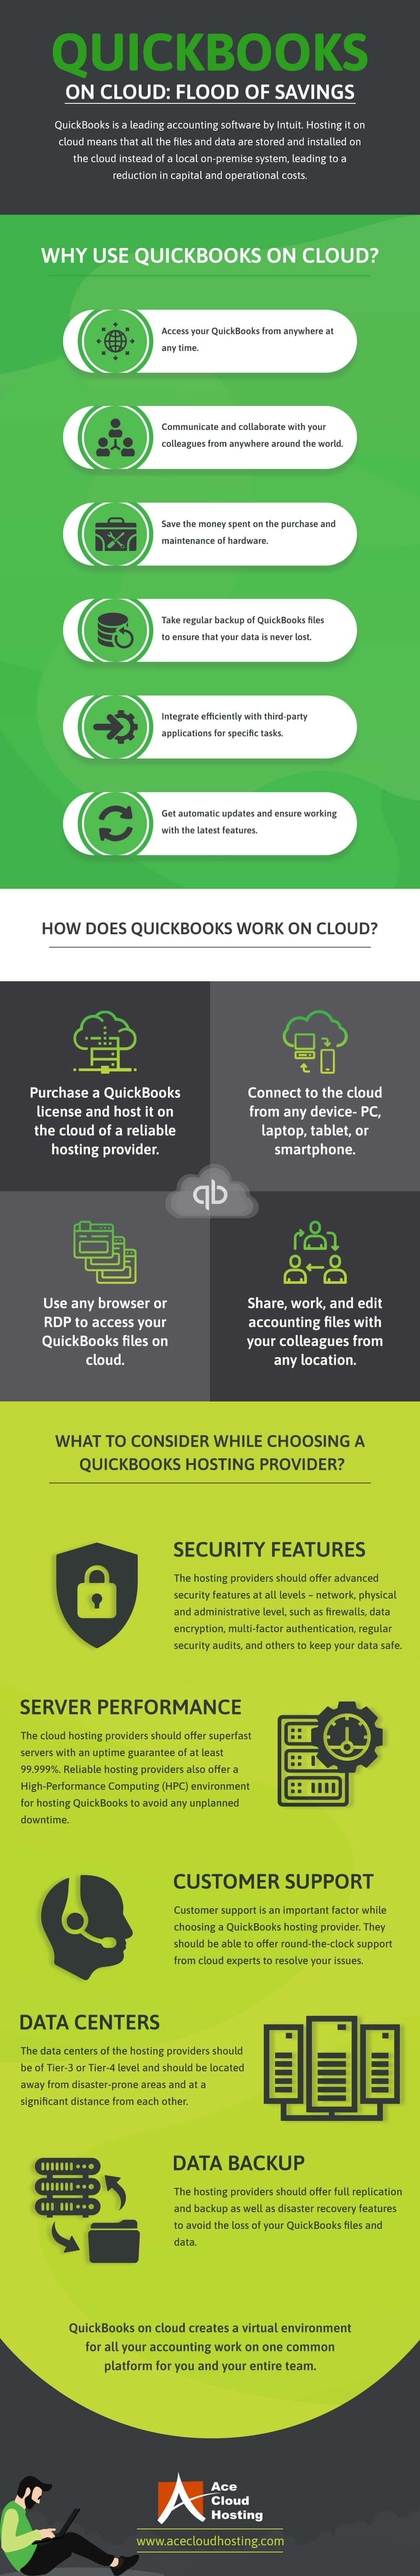 QuickBooks on Cloud Flood of Savings Infographic